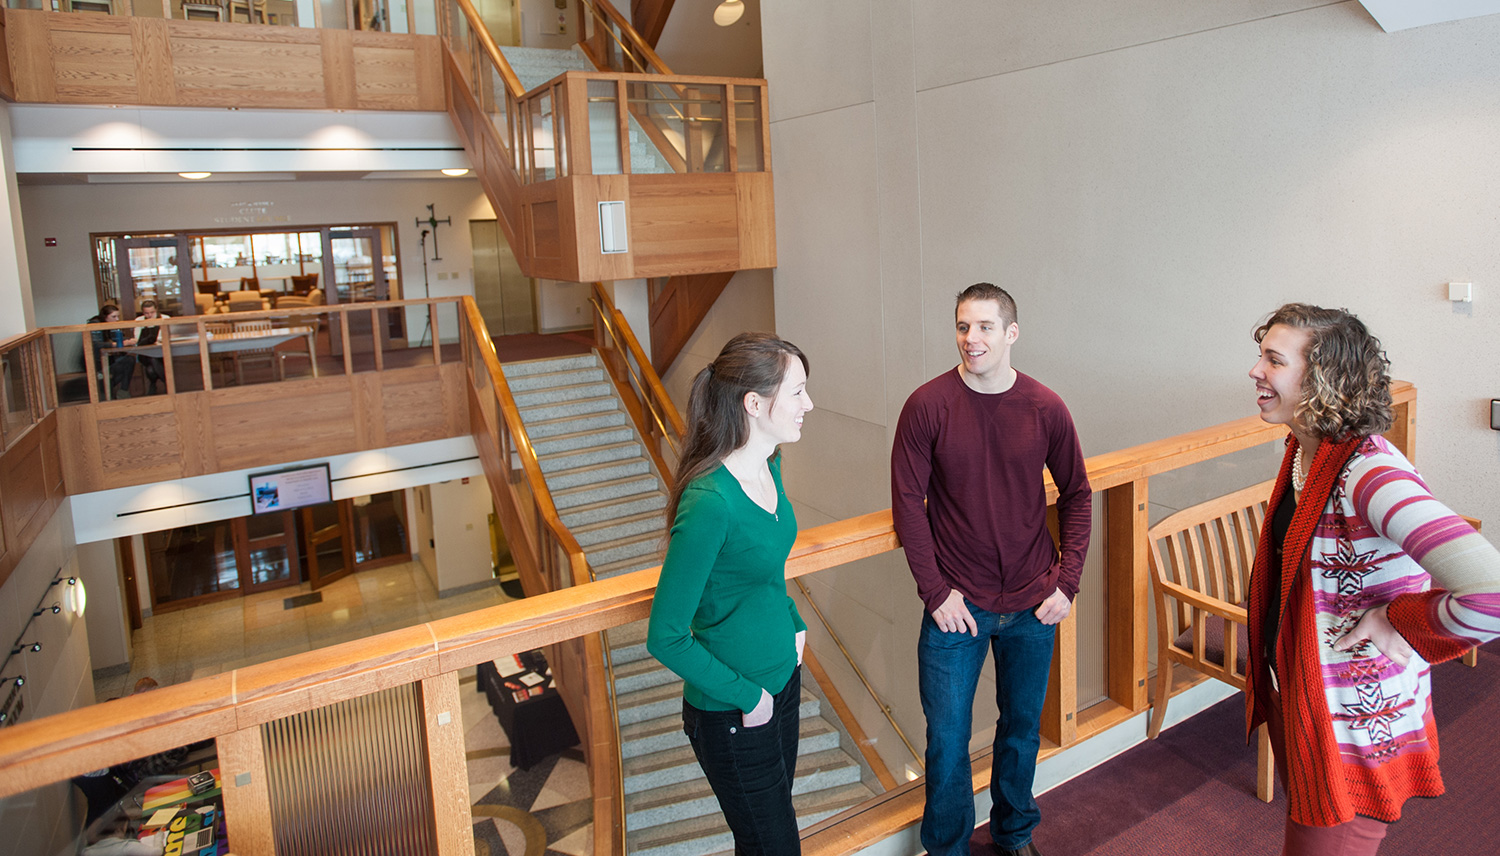 Students at Gonzaga Law standing by the staircase